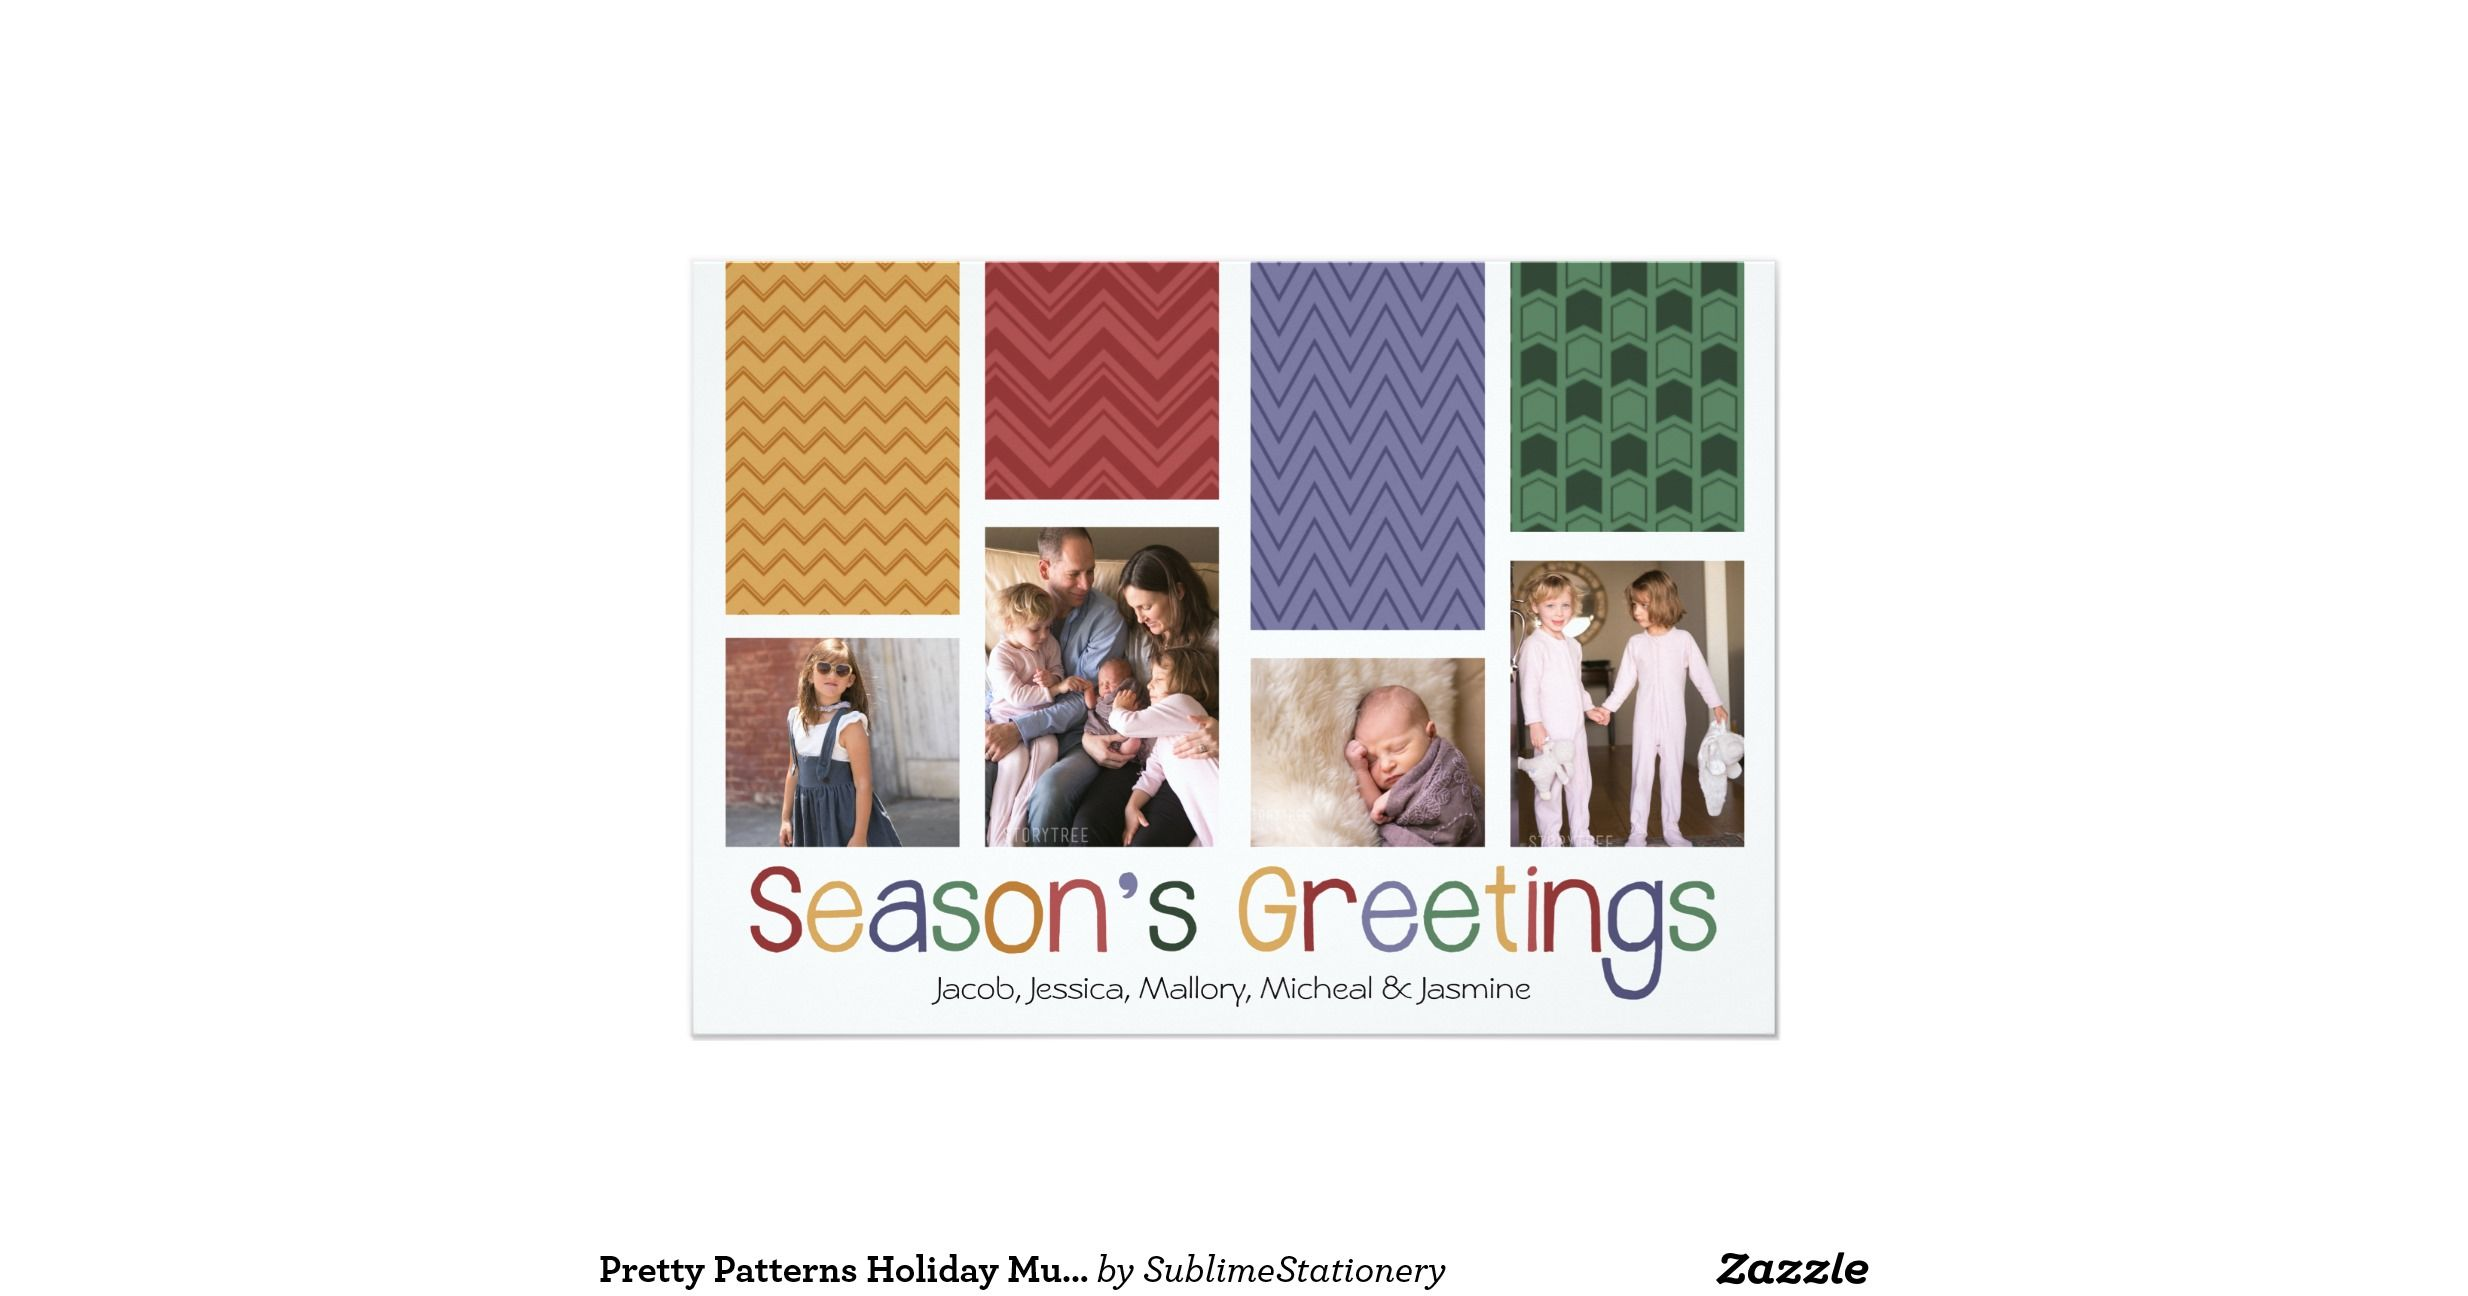 Pretty Patterns Holiday Multi Photo Flat Cards http://www.zazzle.com/pretty_patterns_holiday_multi_photo_flat_cards-256784340656012685?utm_content=buffer3b9bc&utm_medium=social&utm_source=pinterest.com&utm_campaign=buffer #xmas #christmascards #holiday